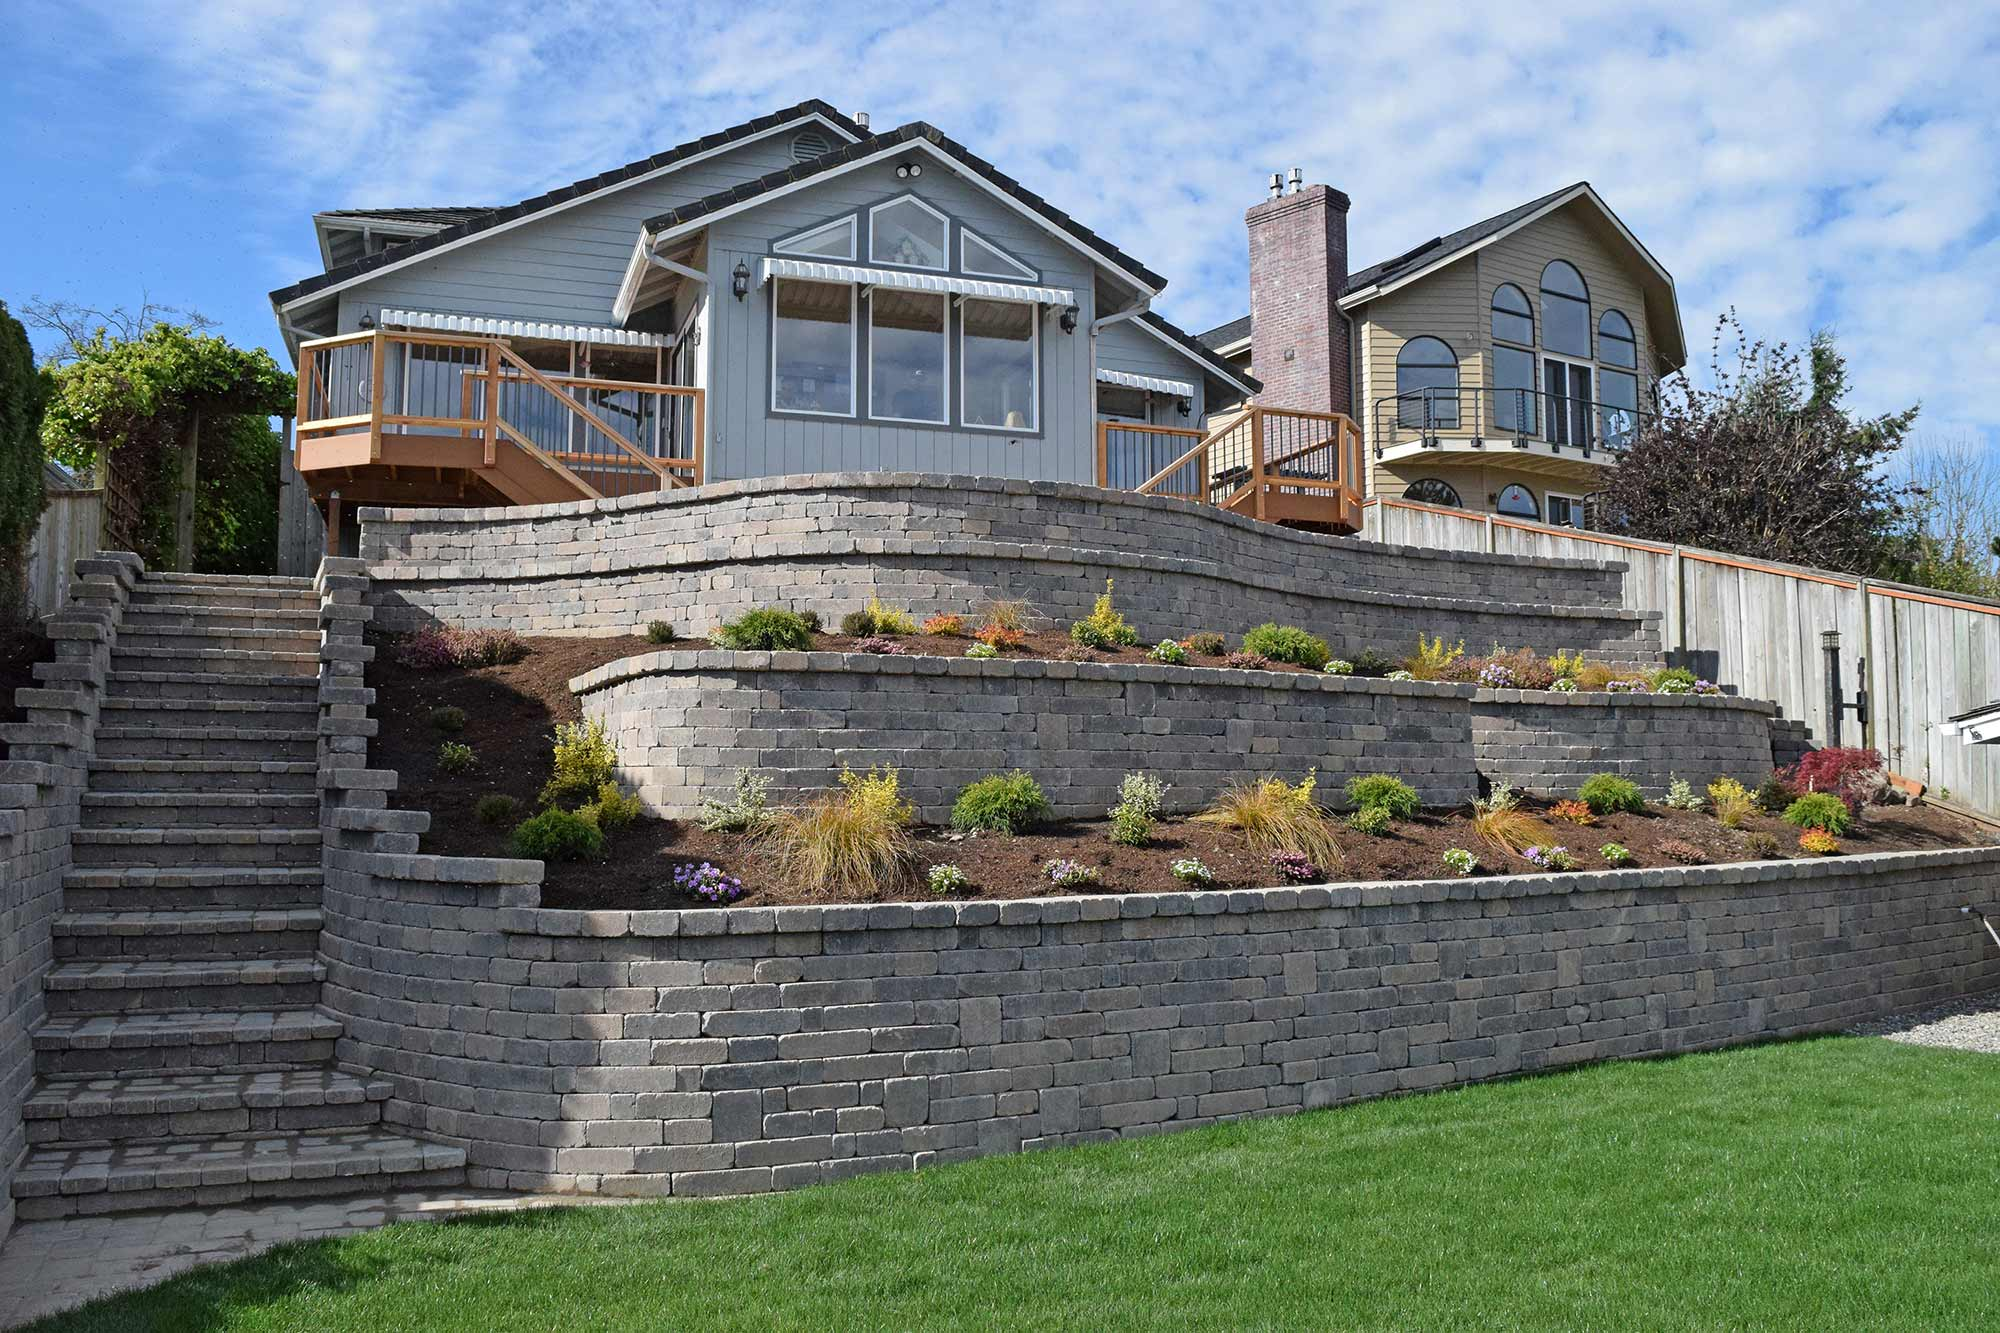 This massive, 4-tier retaining wall includes an integrated stairway, landscaping and a paver patio above the top tier.